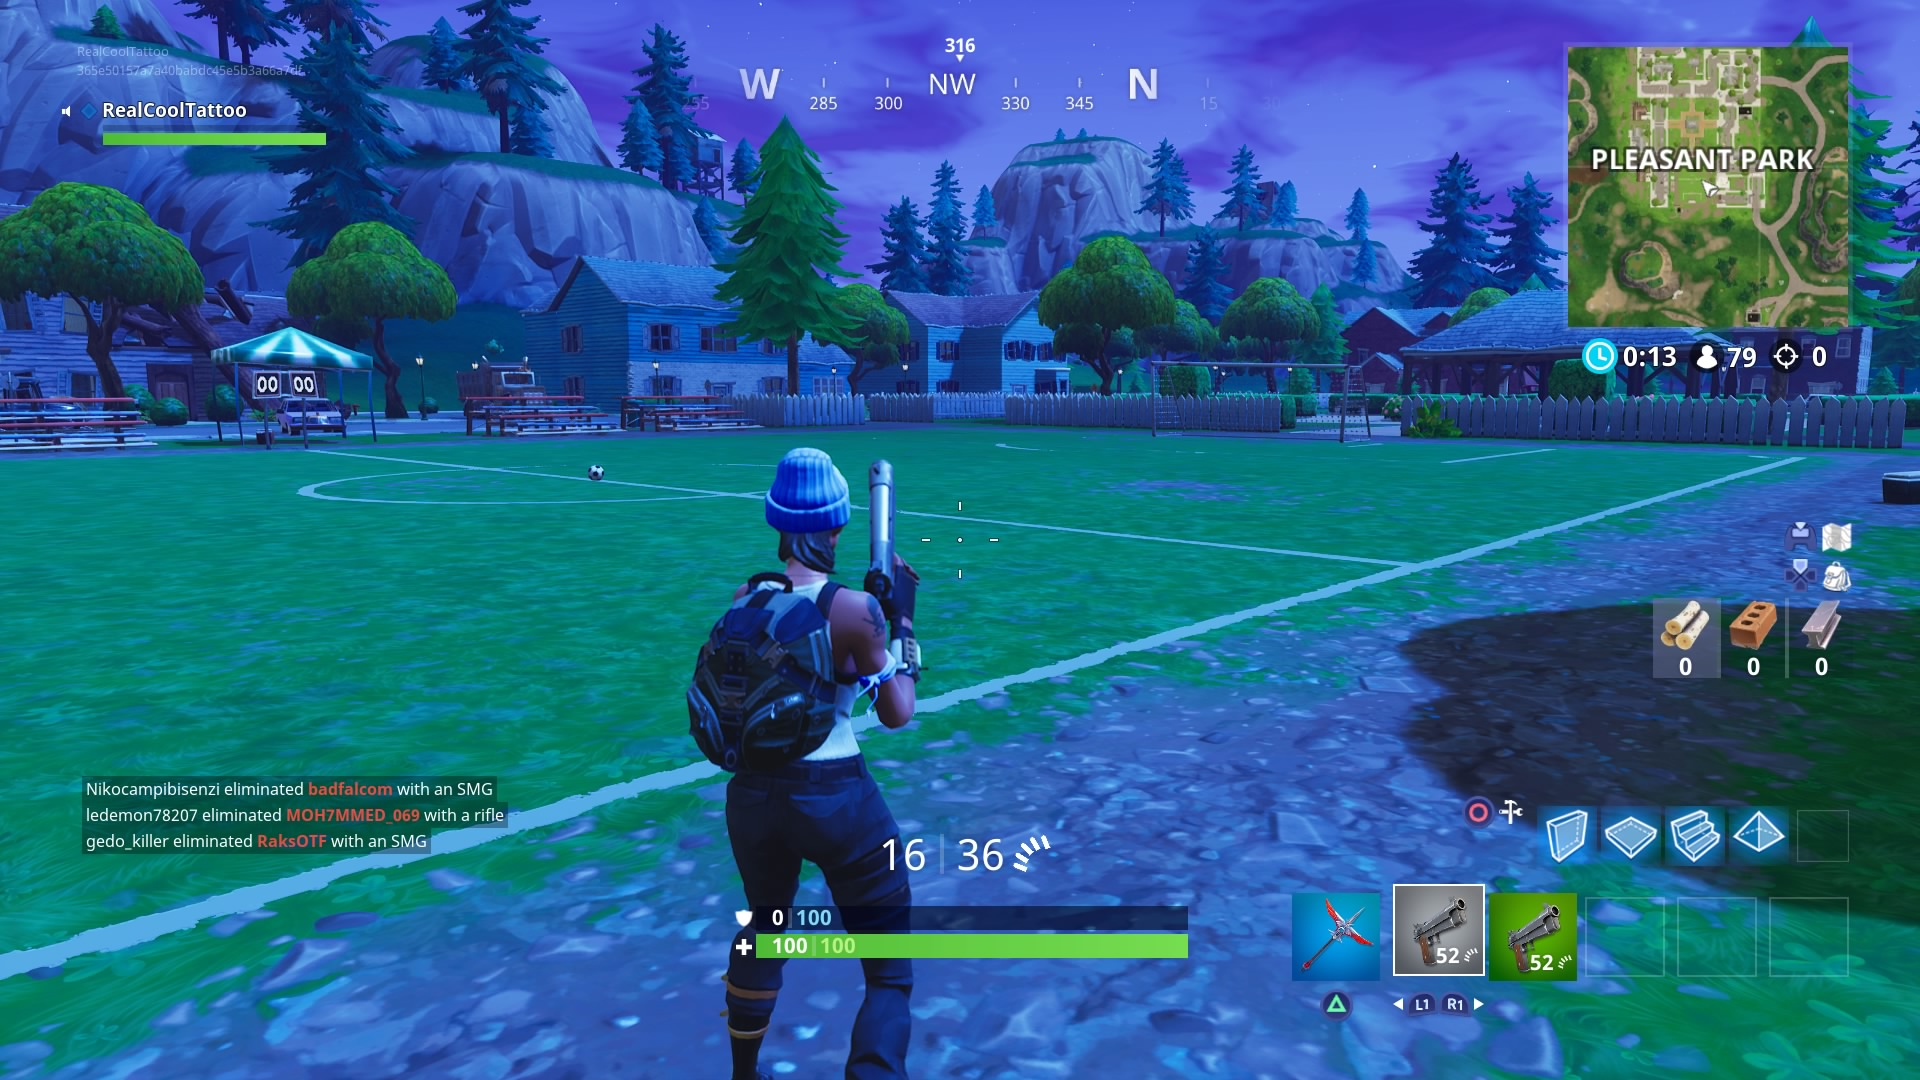 Guide: Fortnite Pleasant Park Treasure Map Location